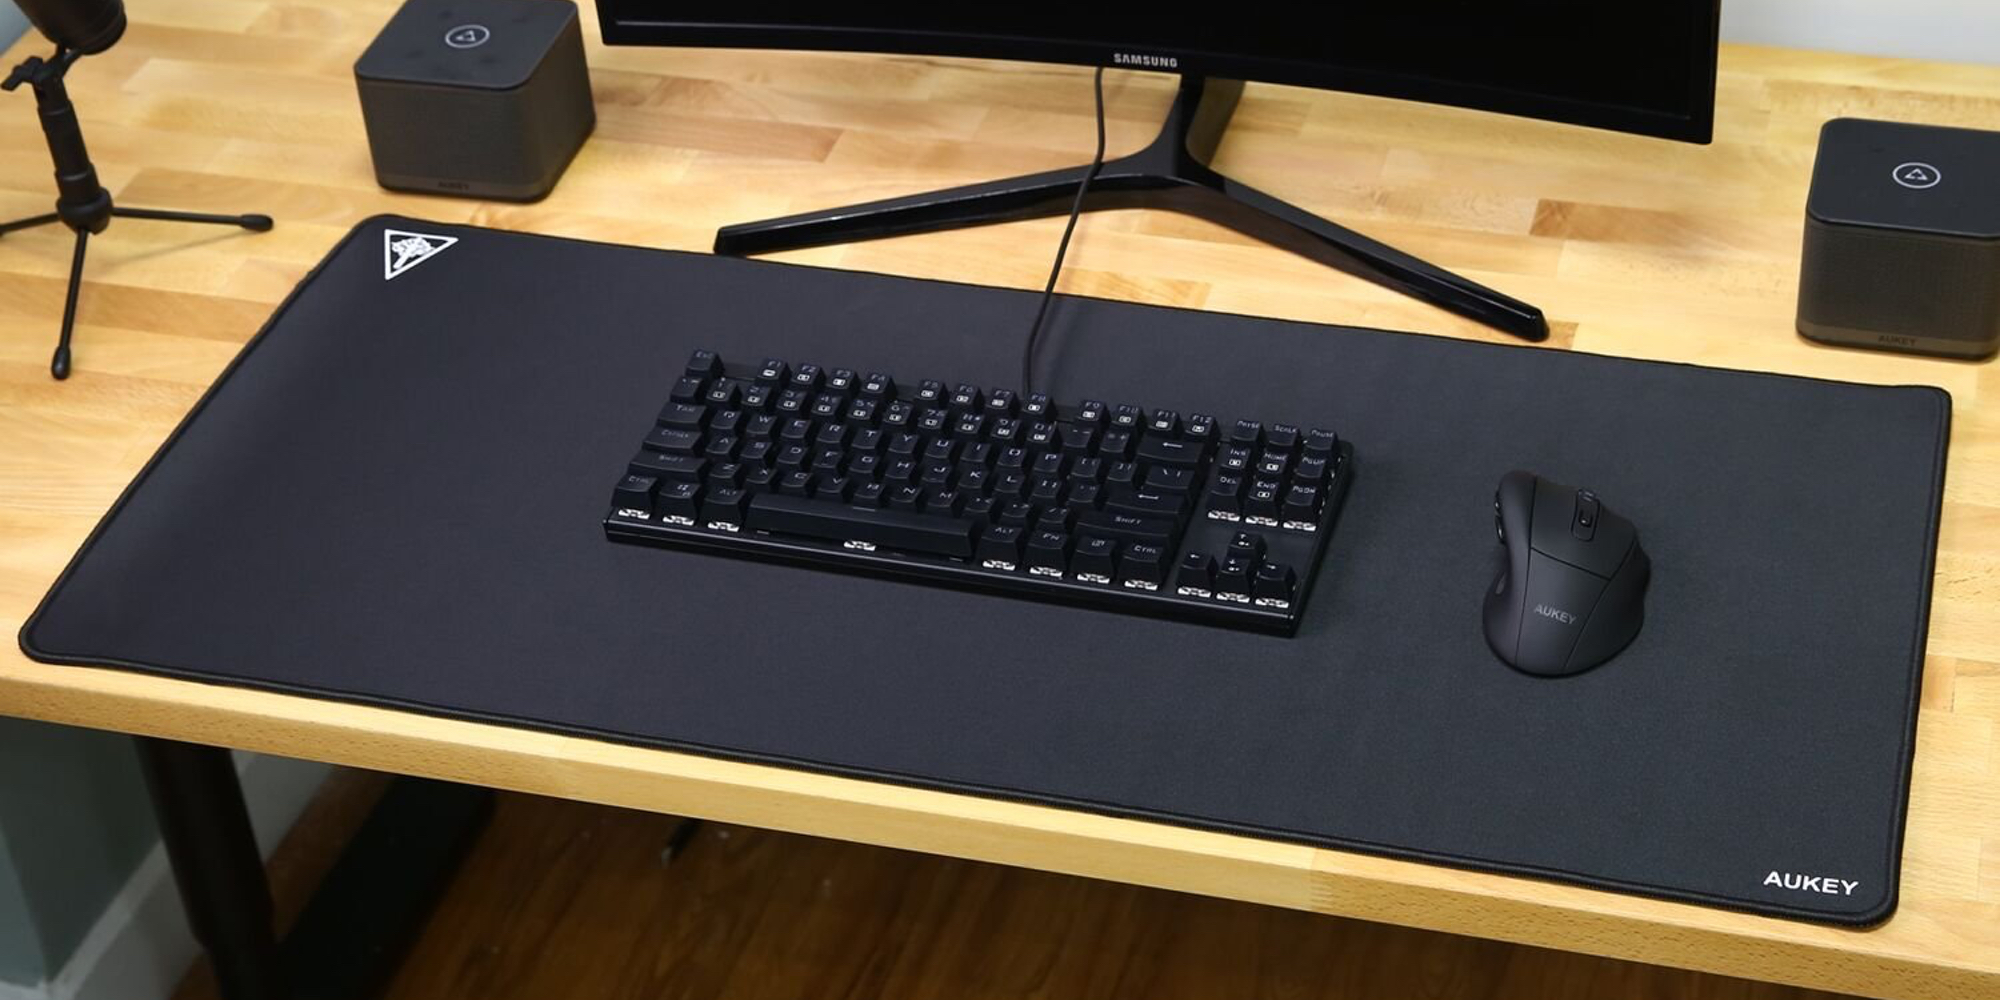 Aukey Gaming Mousepad Is Down To 12 Prime Shipped 9to5toys